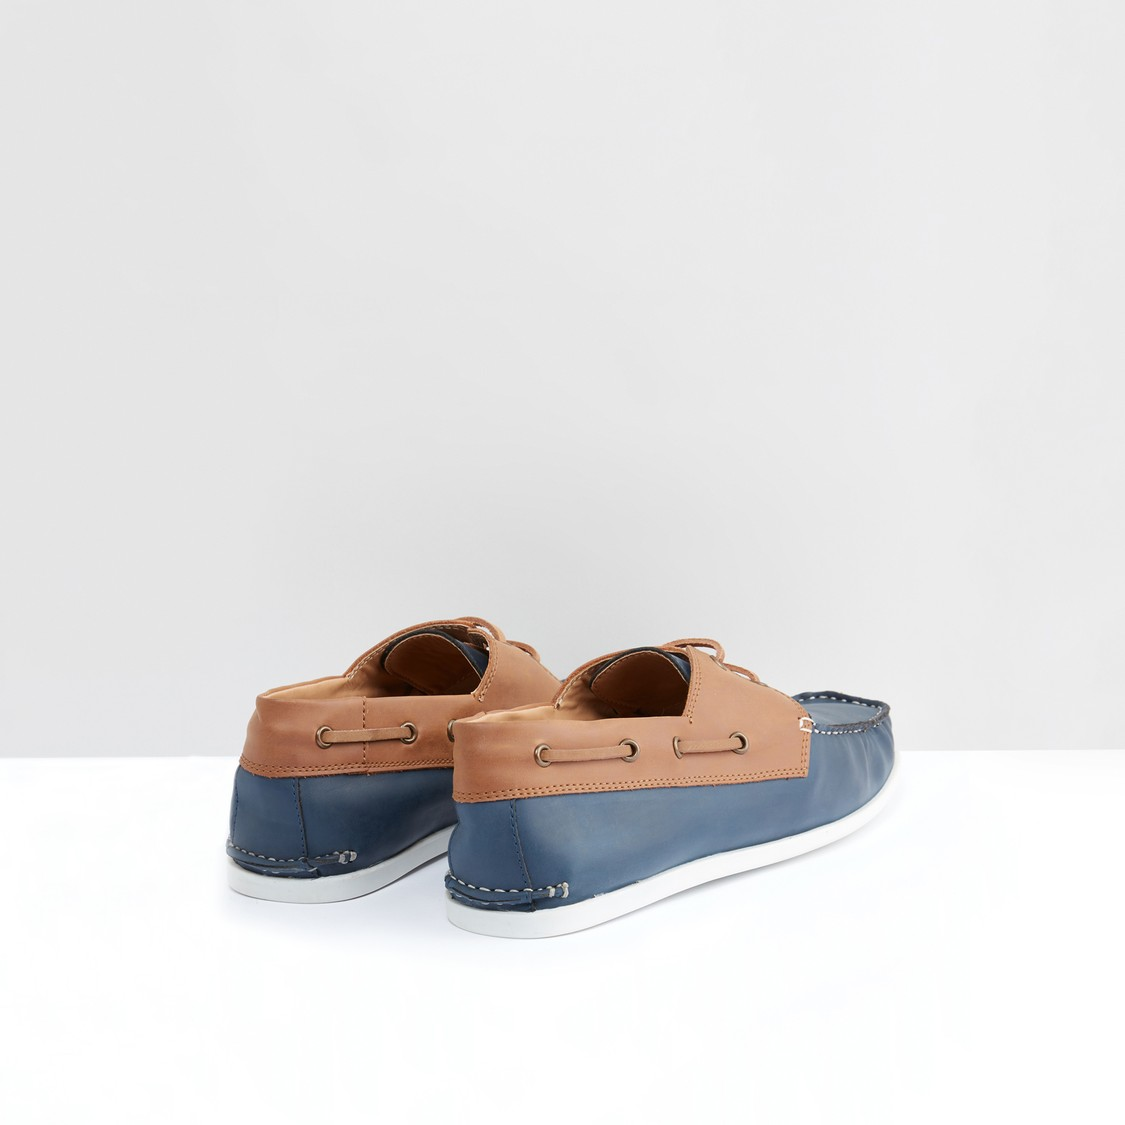 Stitch and Lace Detail Slip-On Shoes